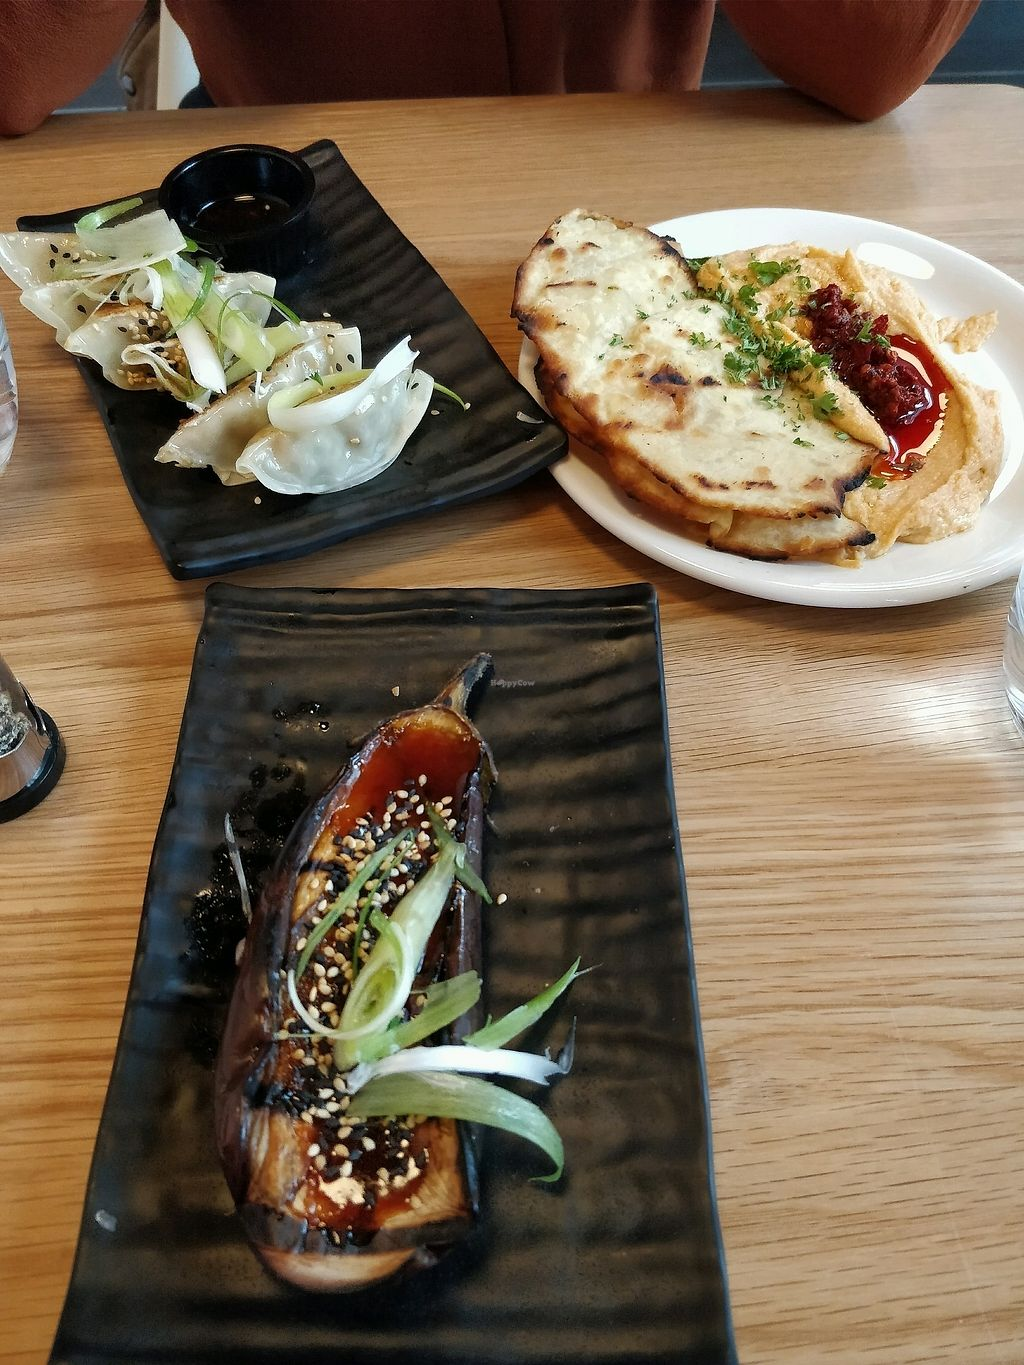 "Photo of Mildred's Dalston  by <a href=""/members/profile/Plumesworld"">Plumesworld</a> <br/>Miso glazed aubergine, gyoza, flat bread and houmous - all vegan <br/> August 31, 2017  - <a href='/contact/abuse/image/99713/299359'>Report</a>"